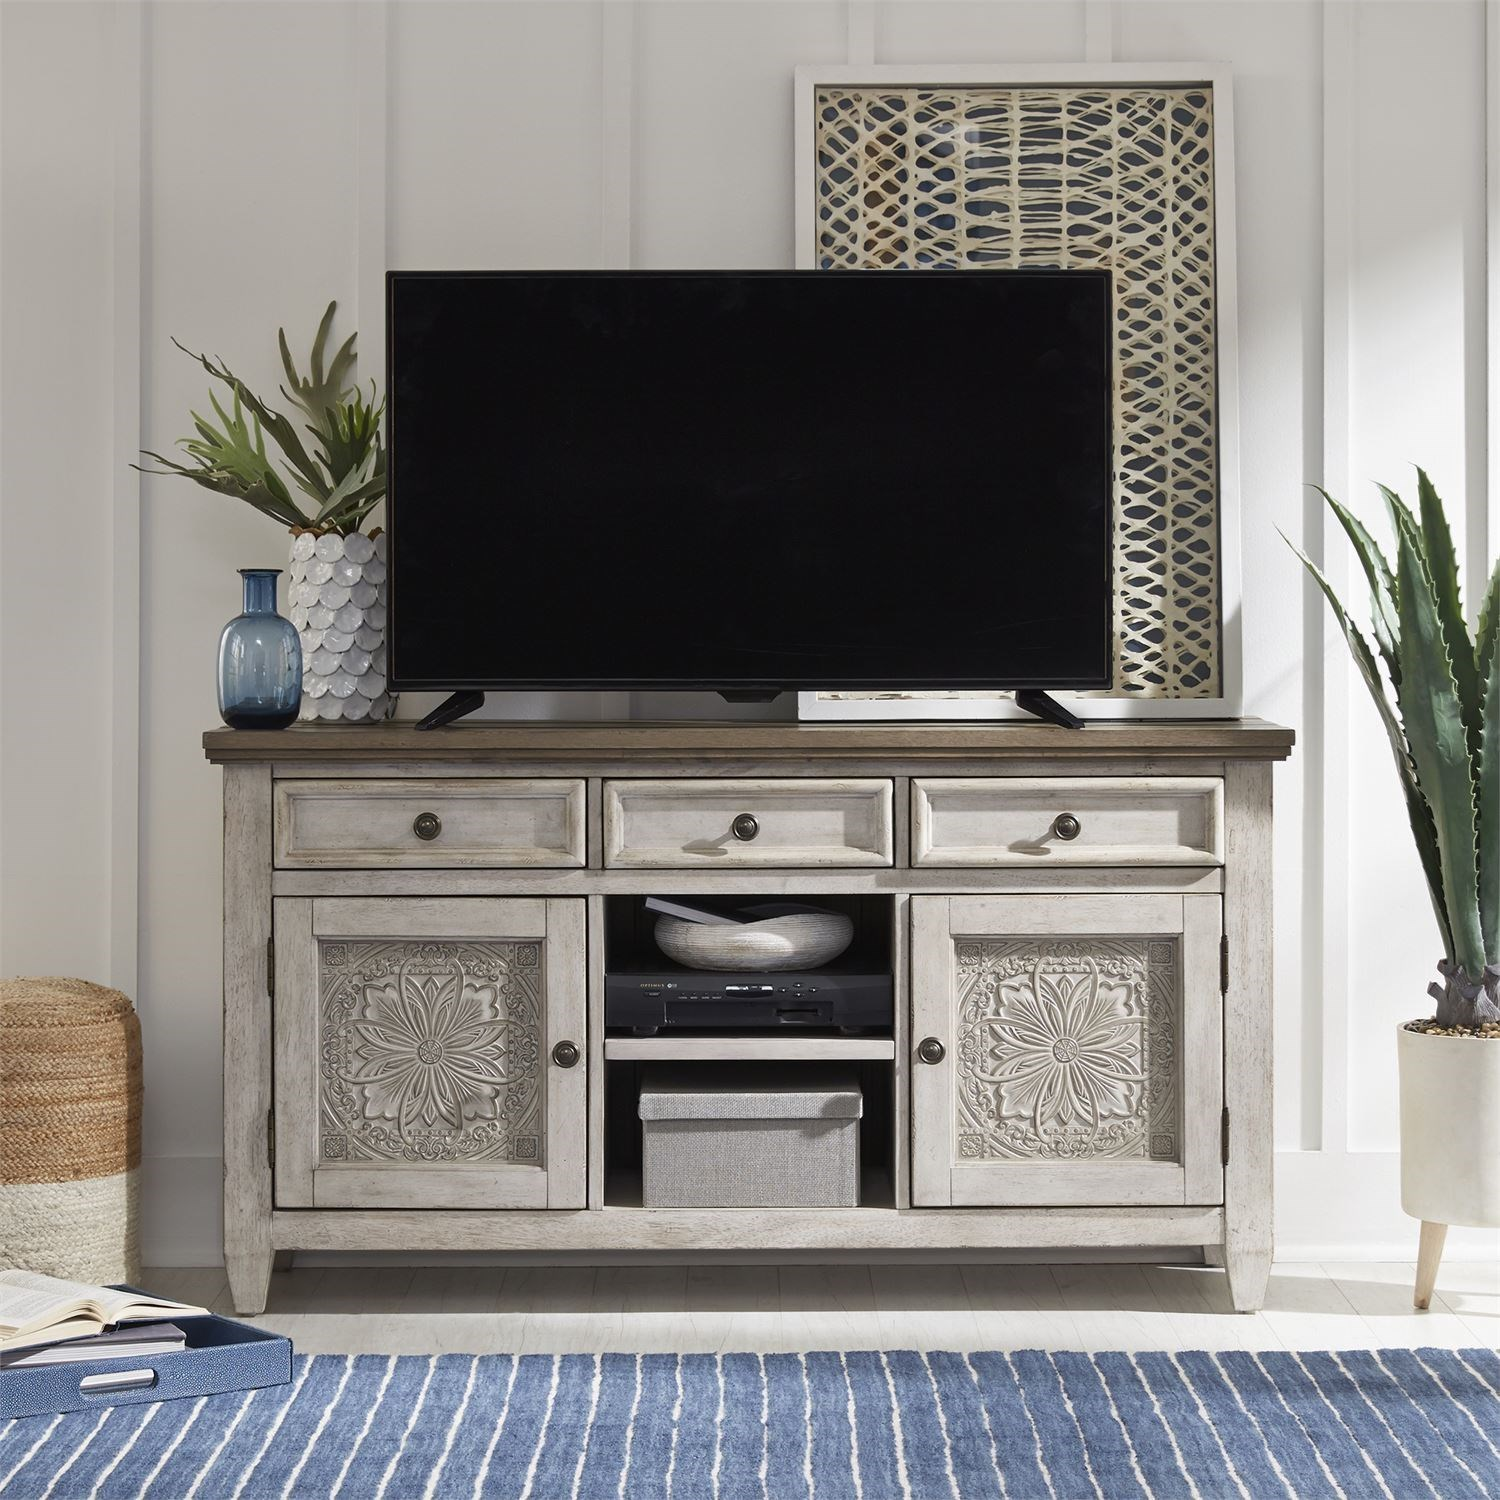 Heartland 56 Inch Tile TV Console by Liberty Furniture at Upper Room Home Furnishings